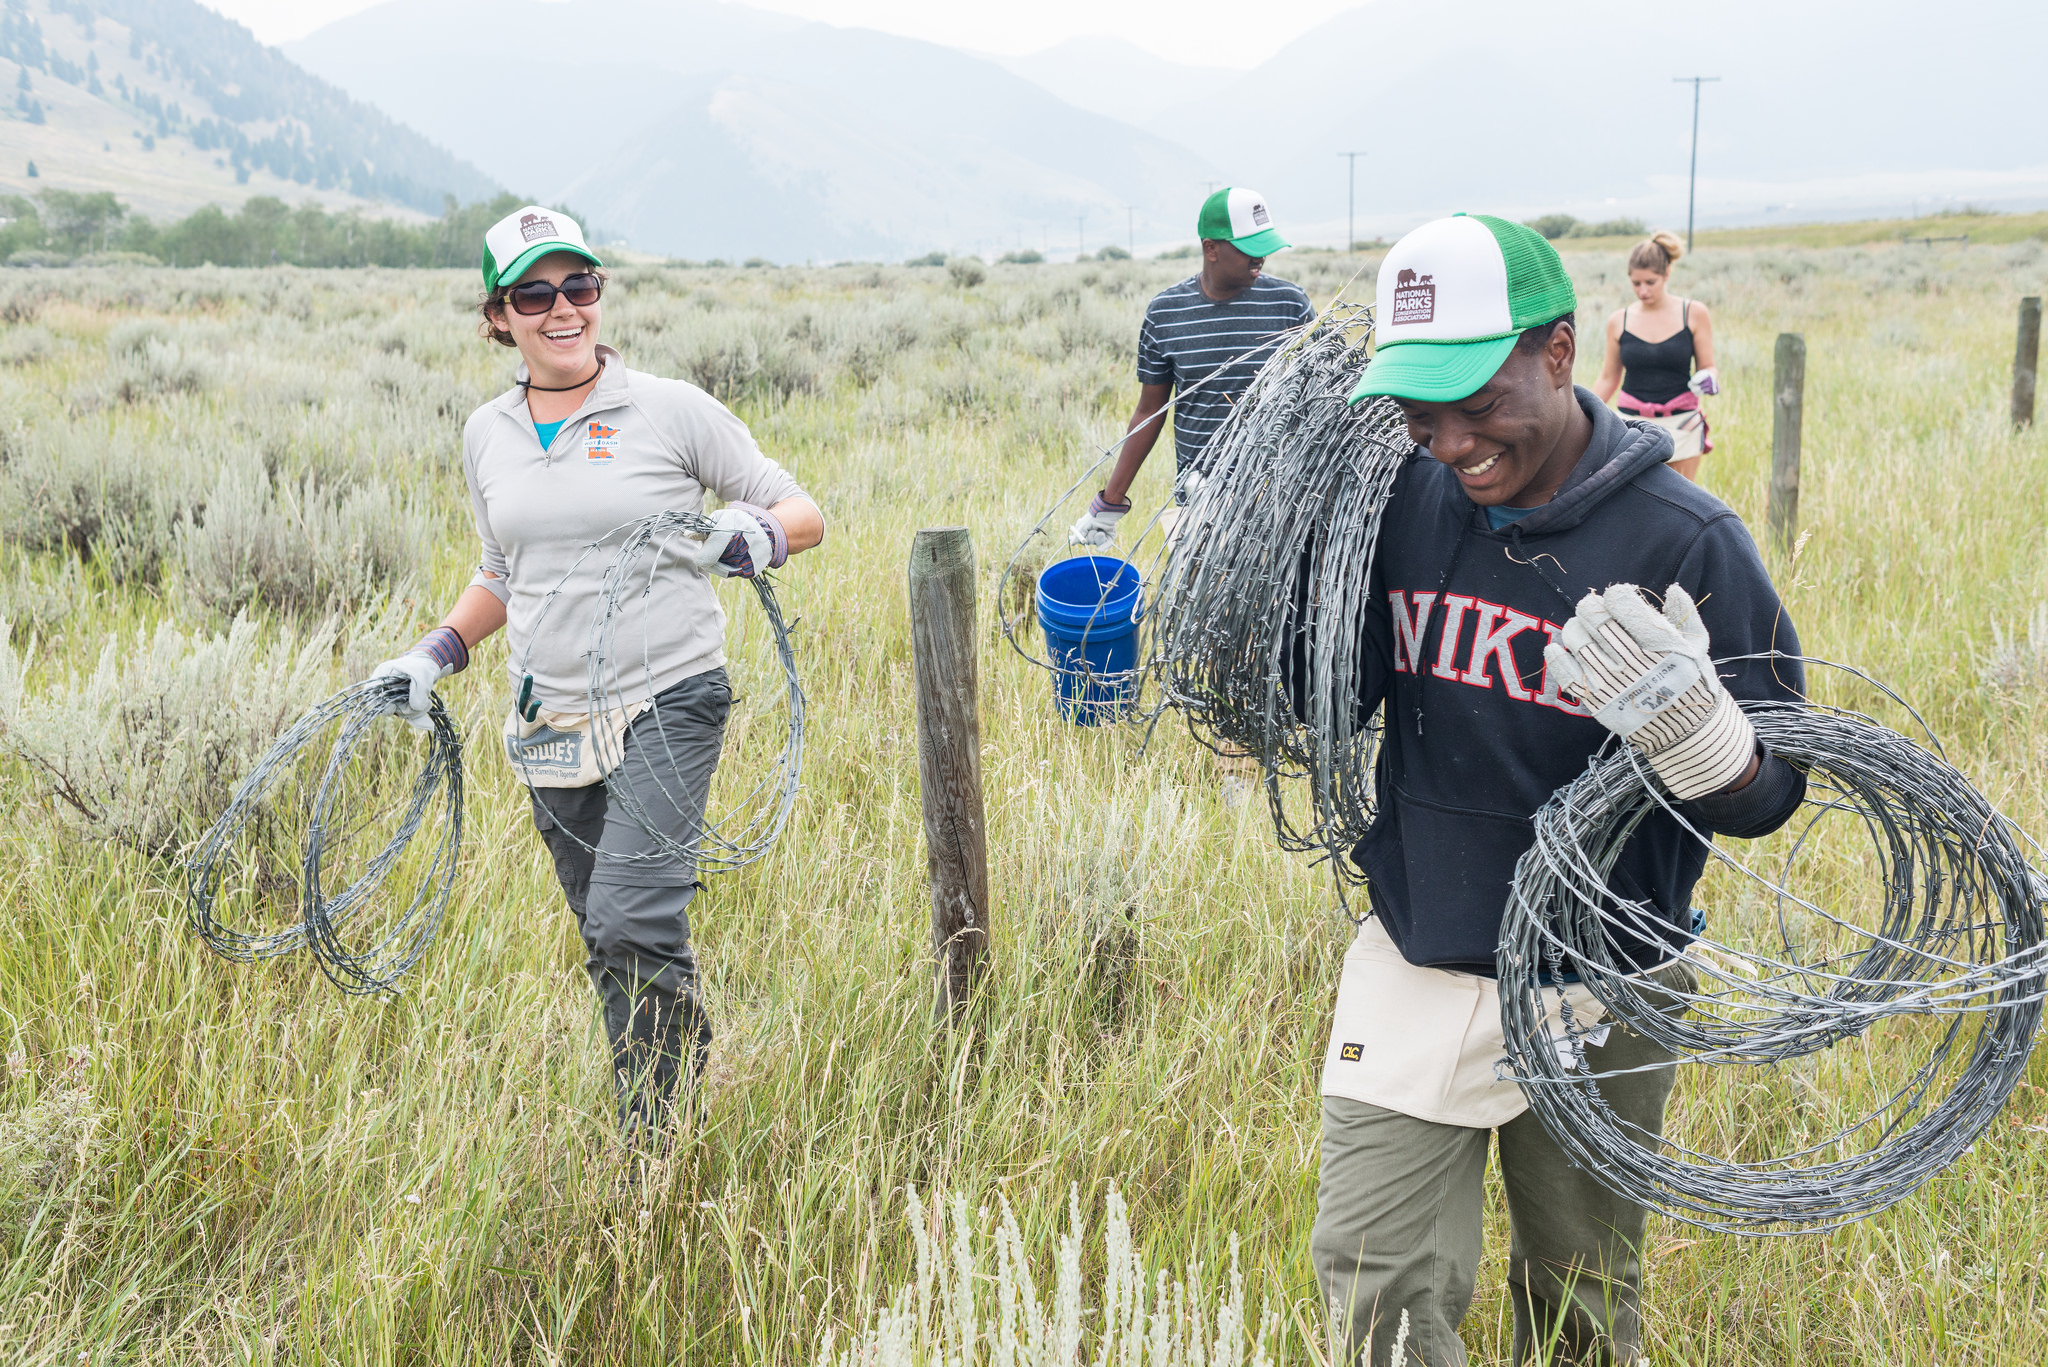 NPCA volunteers work to remove fencing near the western entrance of Yellowstone National Park to allow pronghorn antelope to reestablish historic migration routes. Photo courtesy of the National Park Conservation Association.